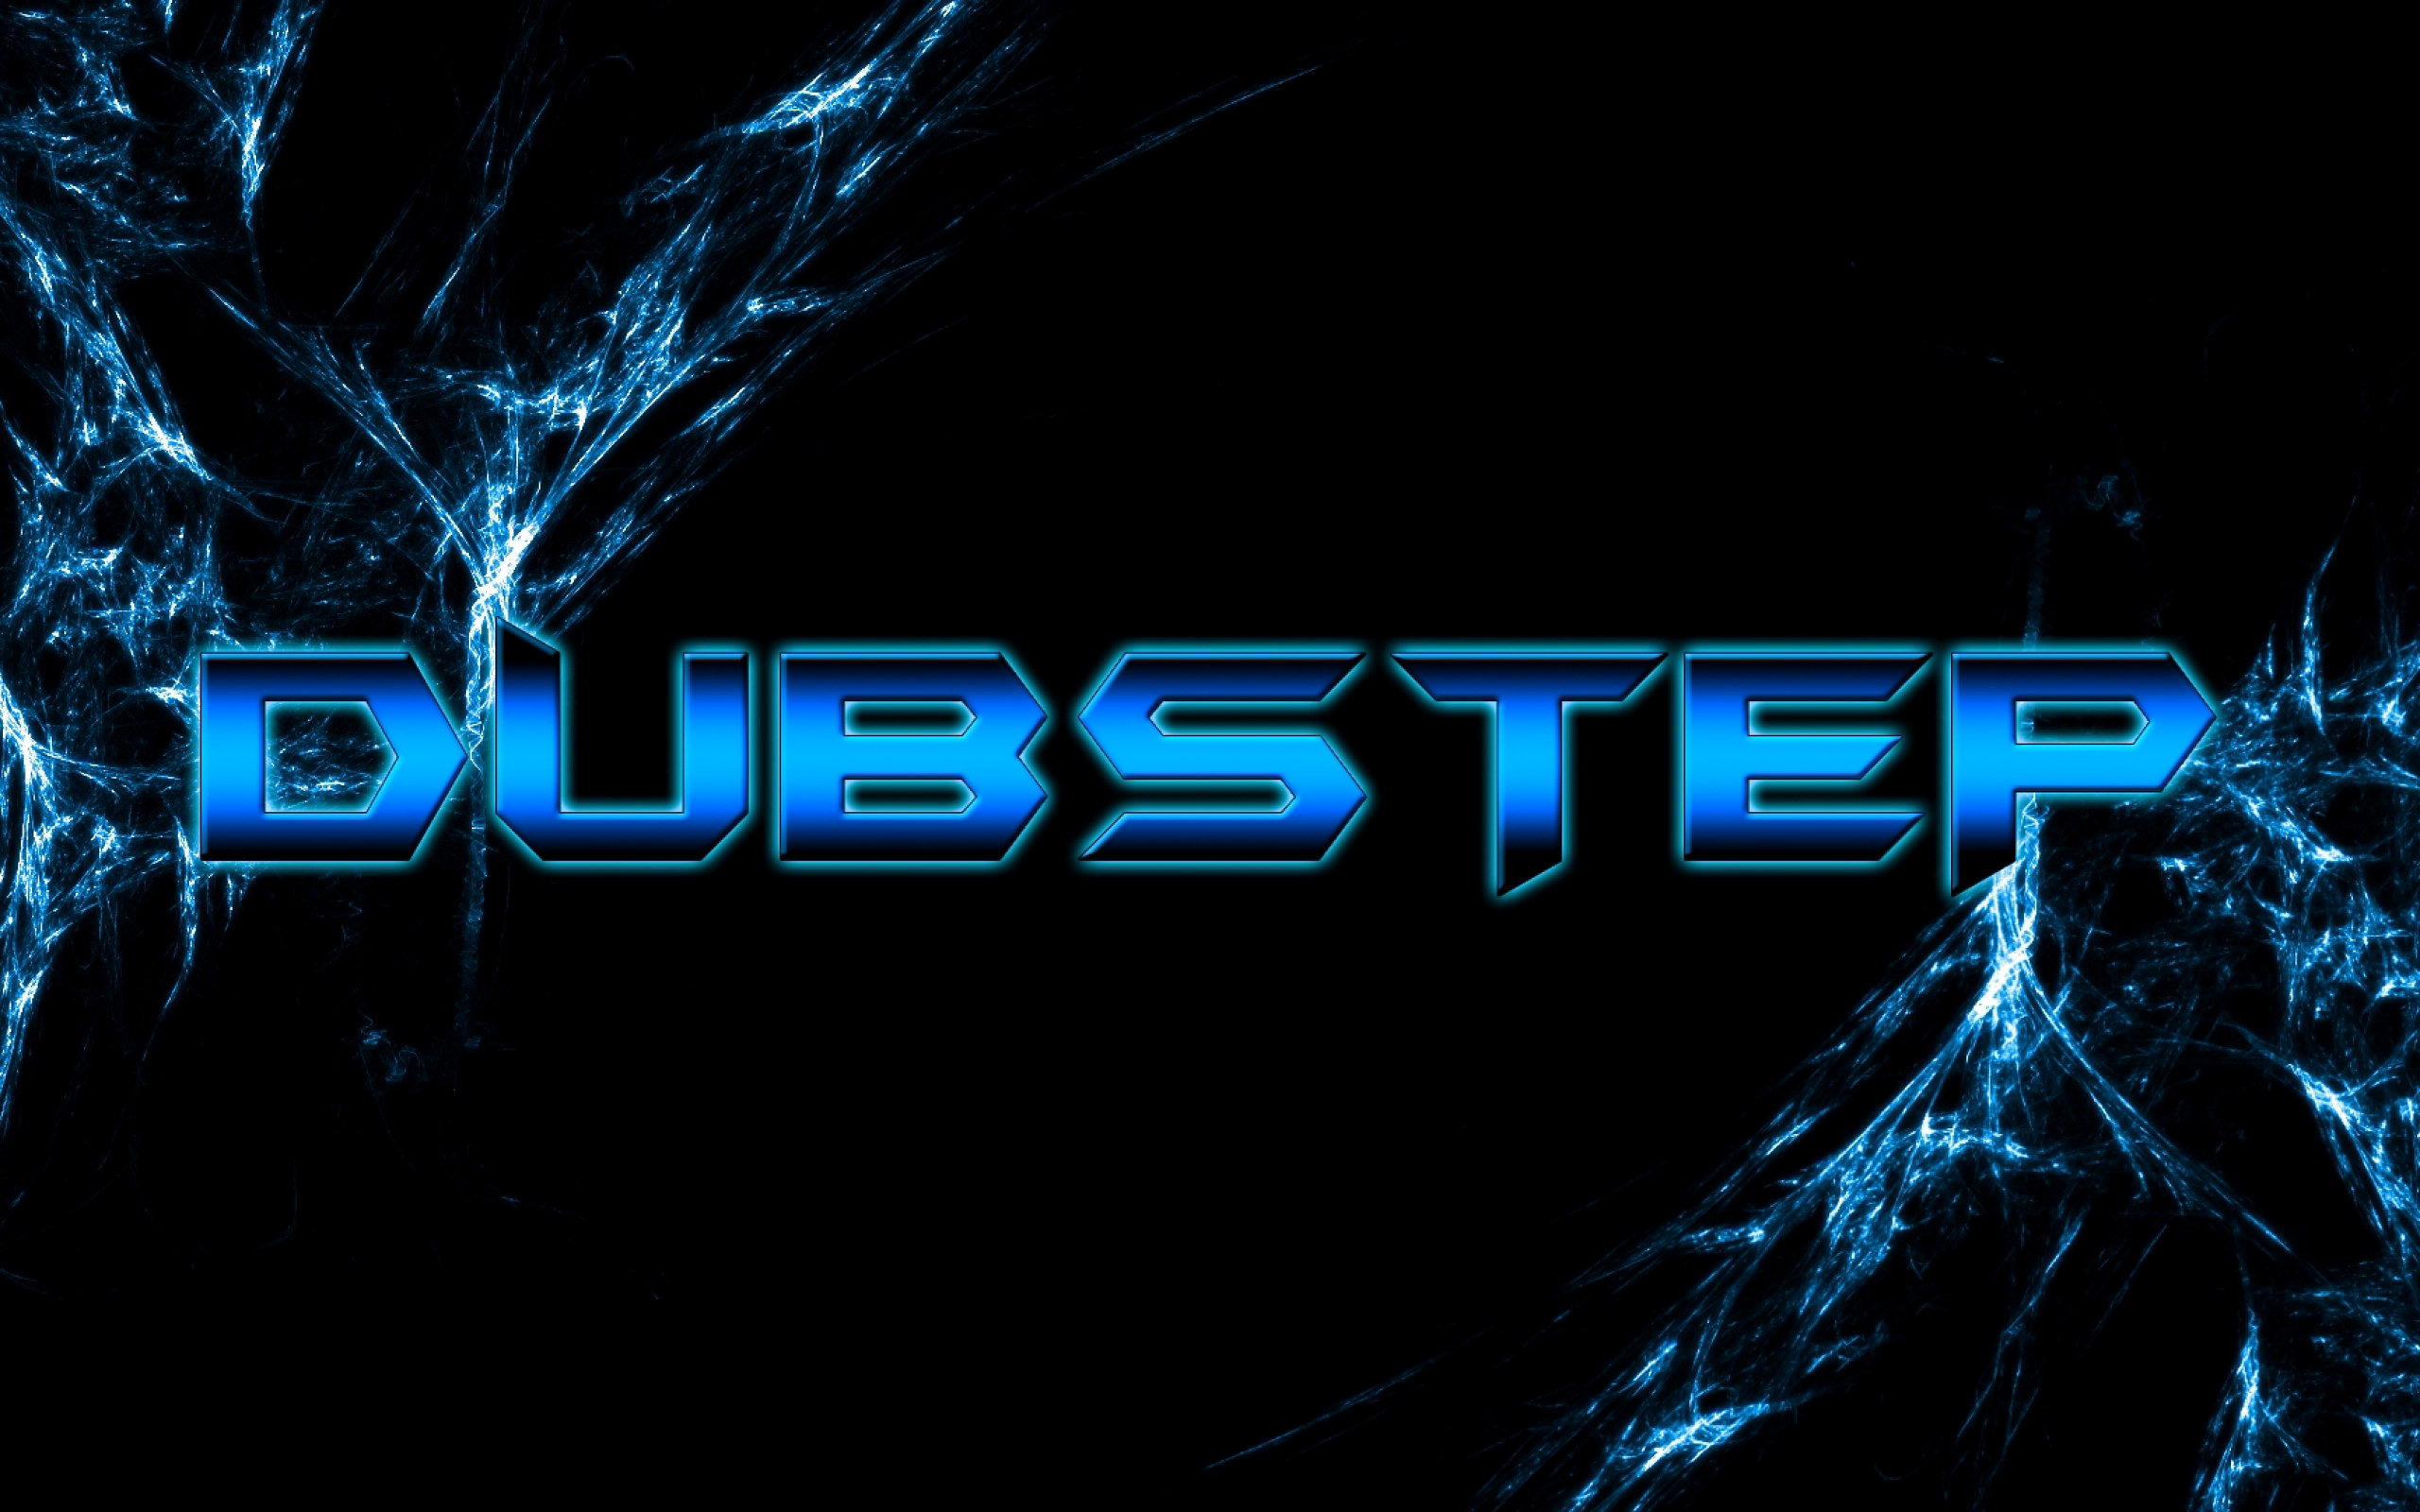 Free Dubstep Wallpaper